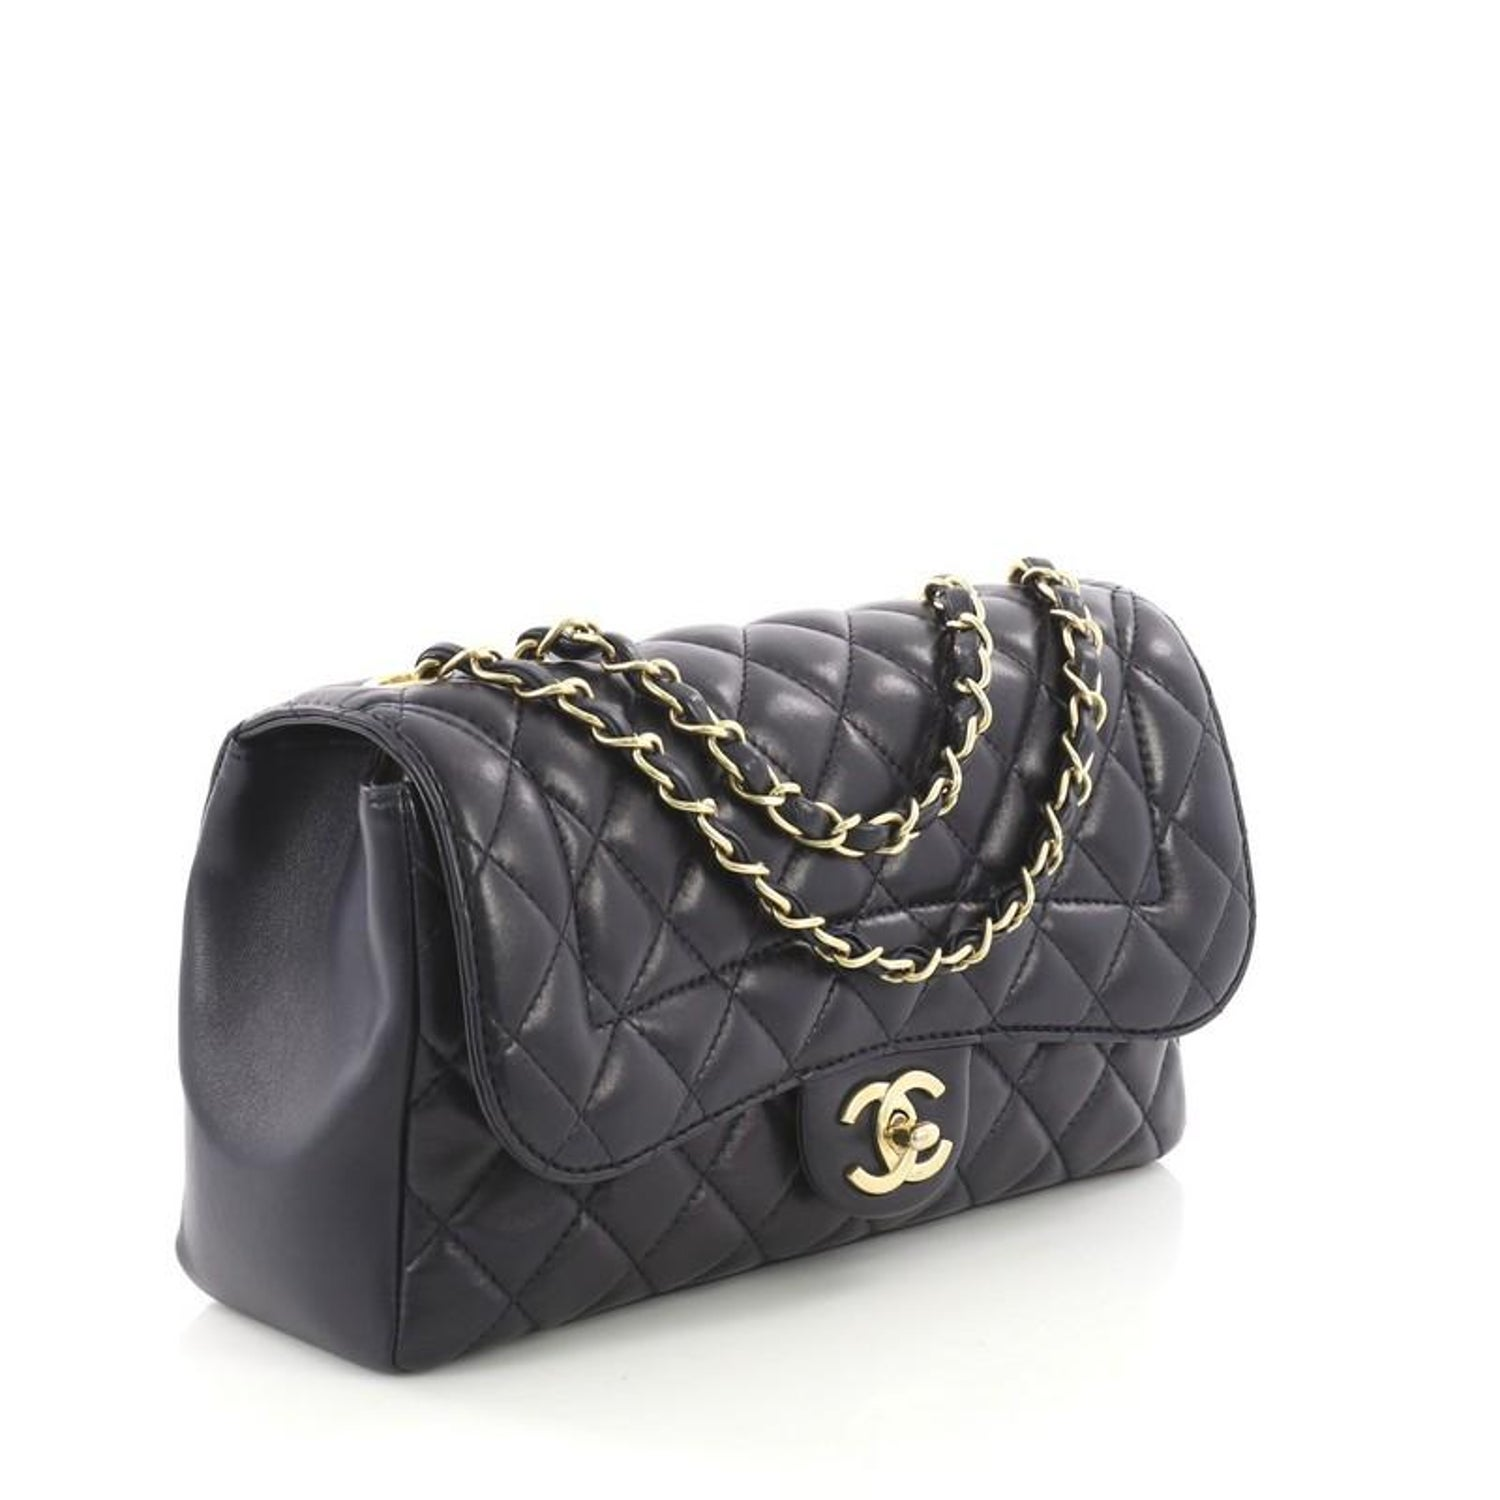 a10ddd6e1ad71e Chanel Mademoiselle Chic Flap Bag Quilted Lambskin Medium at 1stdibs